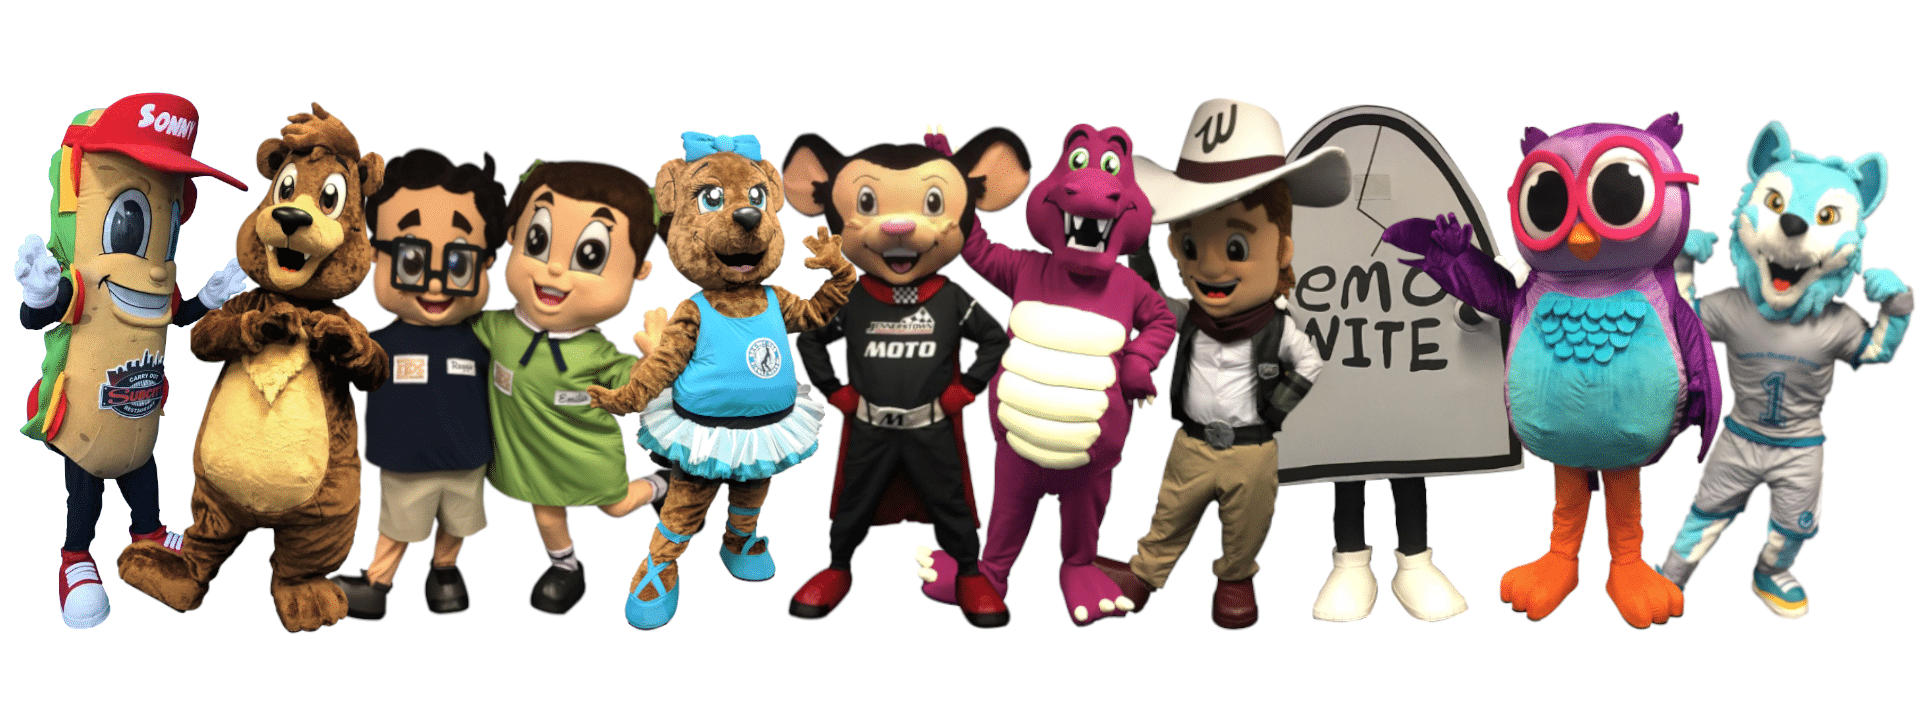 Custom Mascot Costumes by Promo Bears